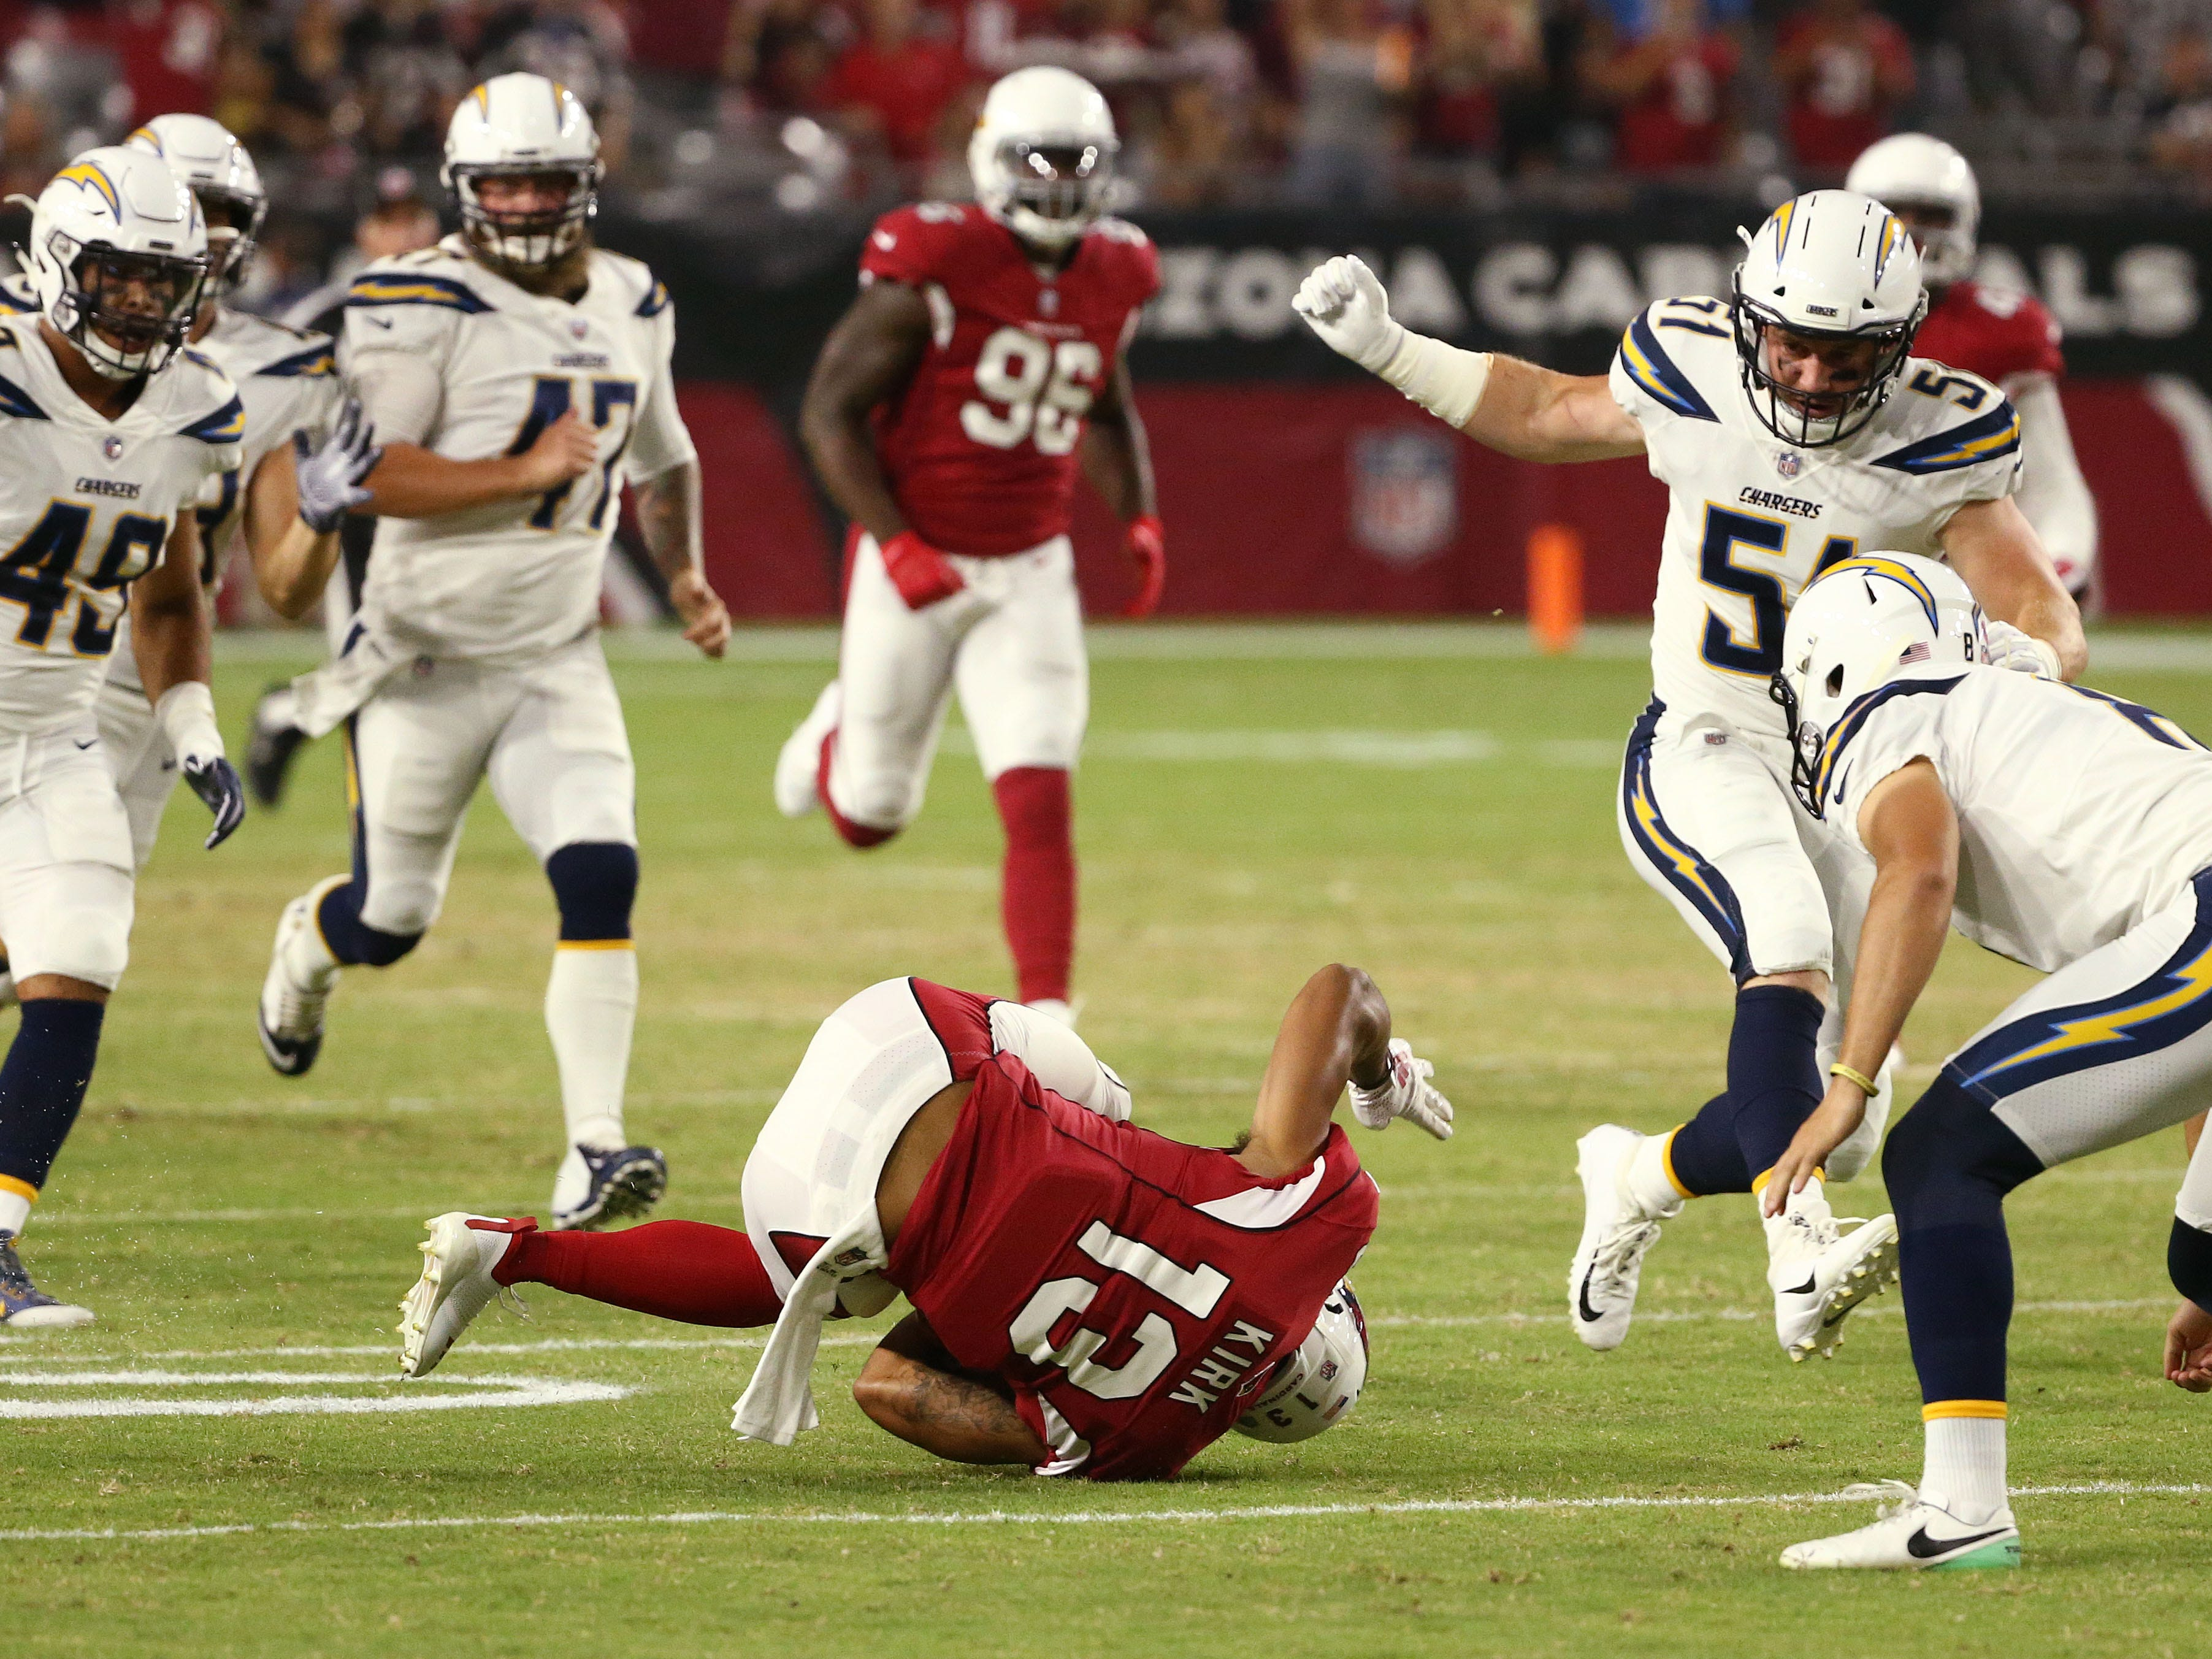 Arizona Cardinals Christian Kirk returns a punt but falls down as against the L.A. Chargers in the first half during a preseason NFL football game on Aug. 11, 2018 at University of Phoenix Stadium in Glendale, Ariz.